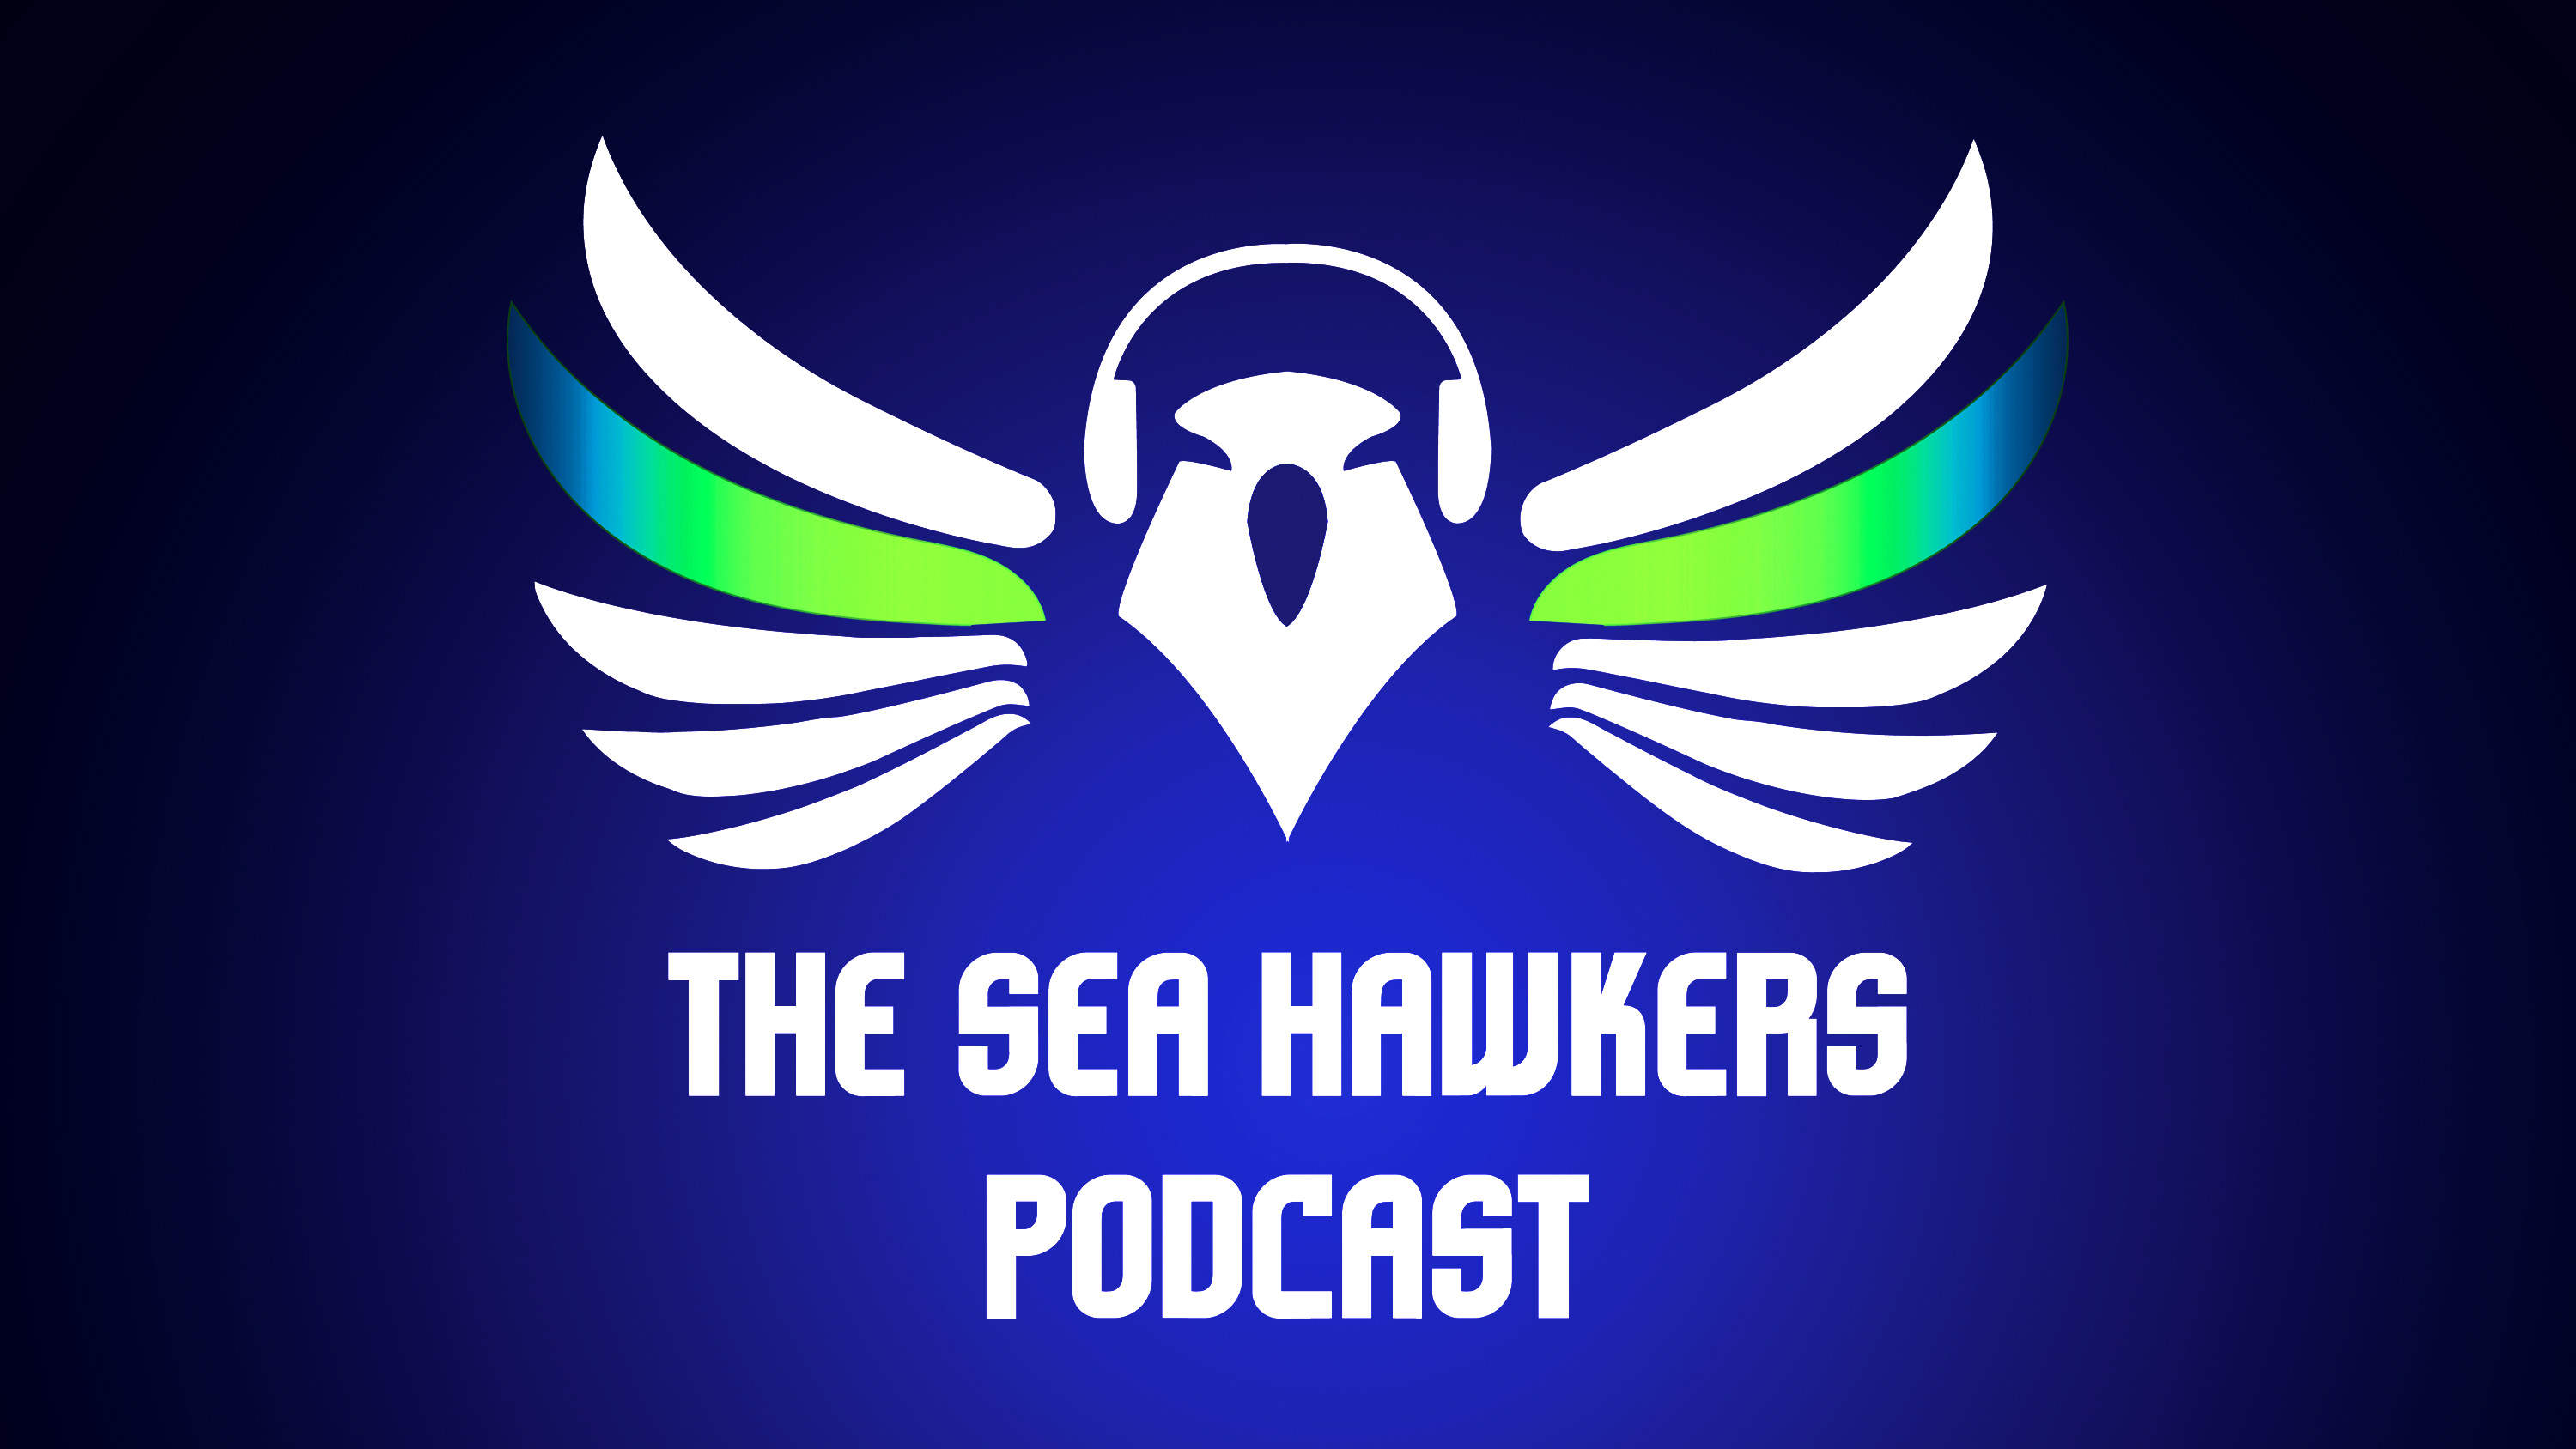 Listen to Samantha on Seahawkers Podcast!